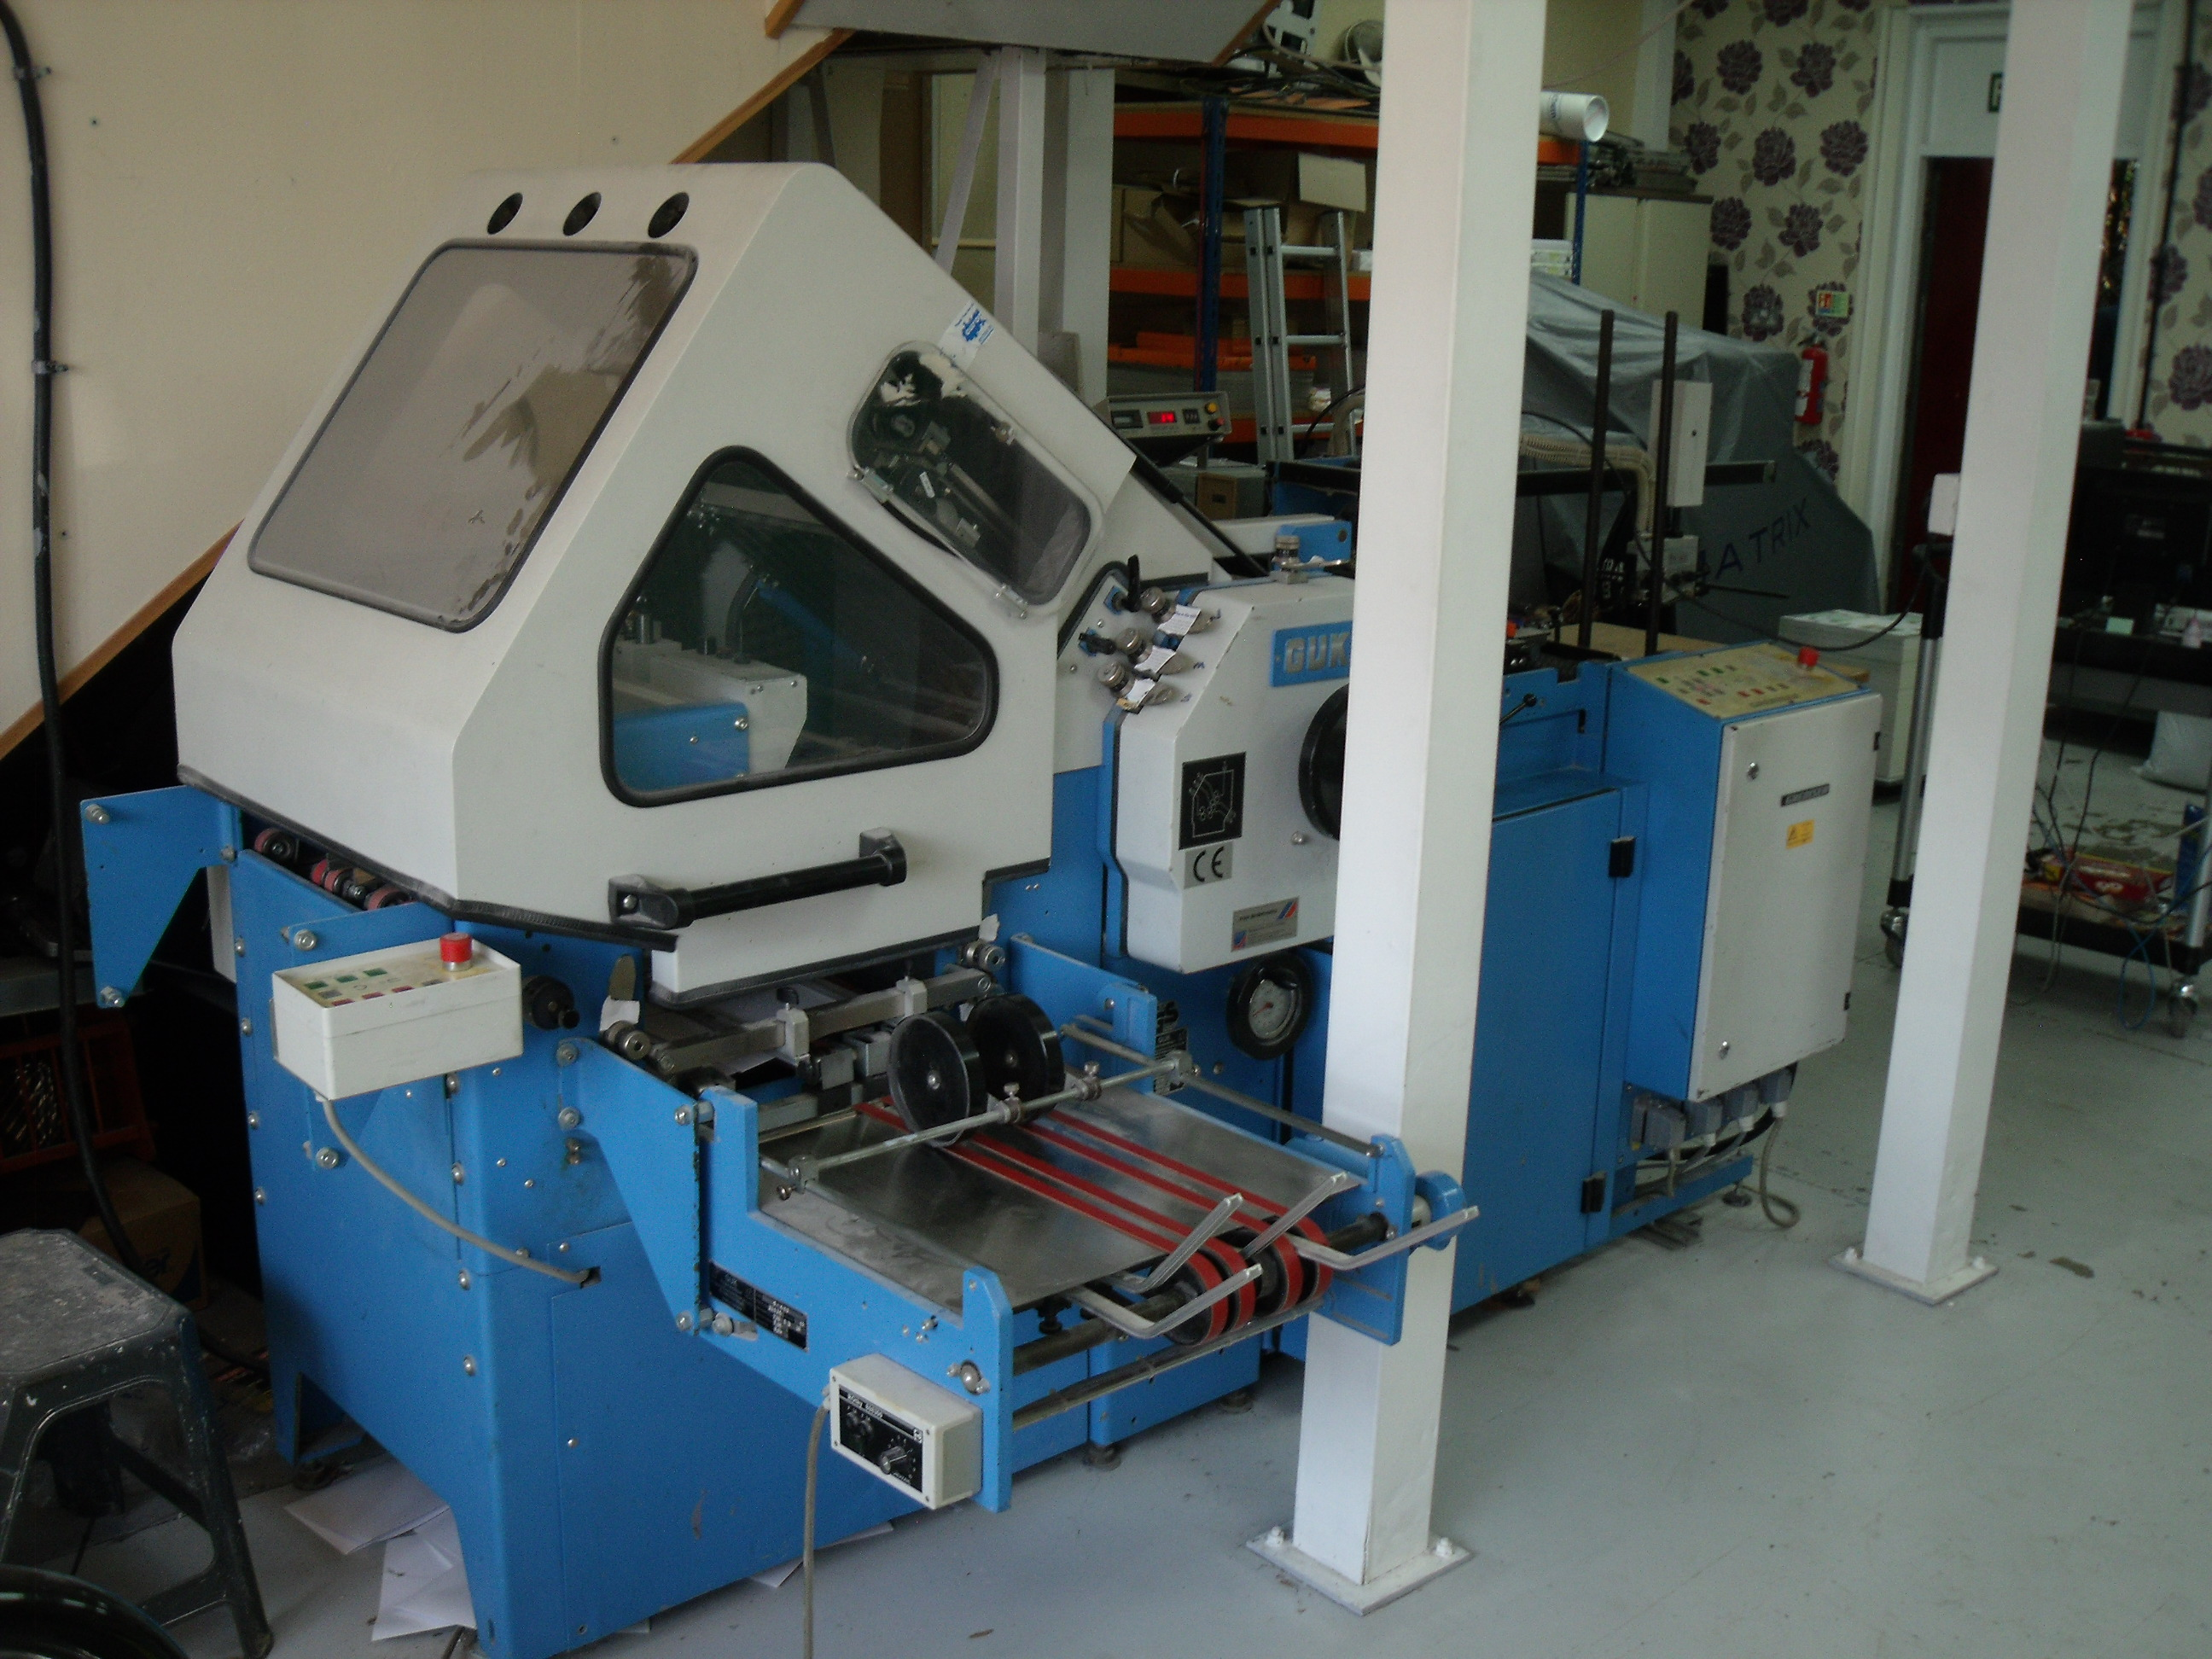 USED GUK K49-4 PAPER FOLDING MACHINE